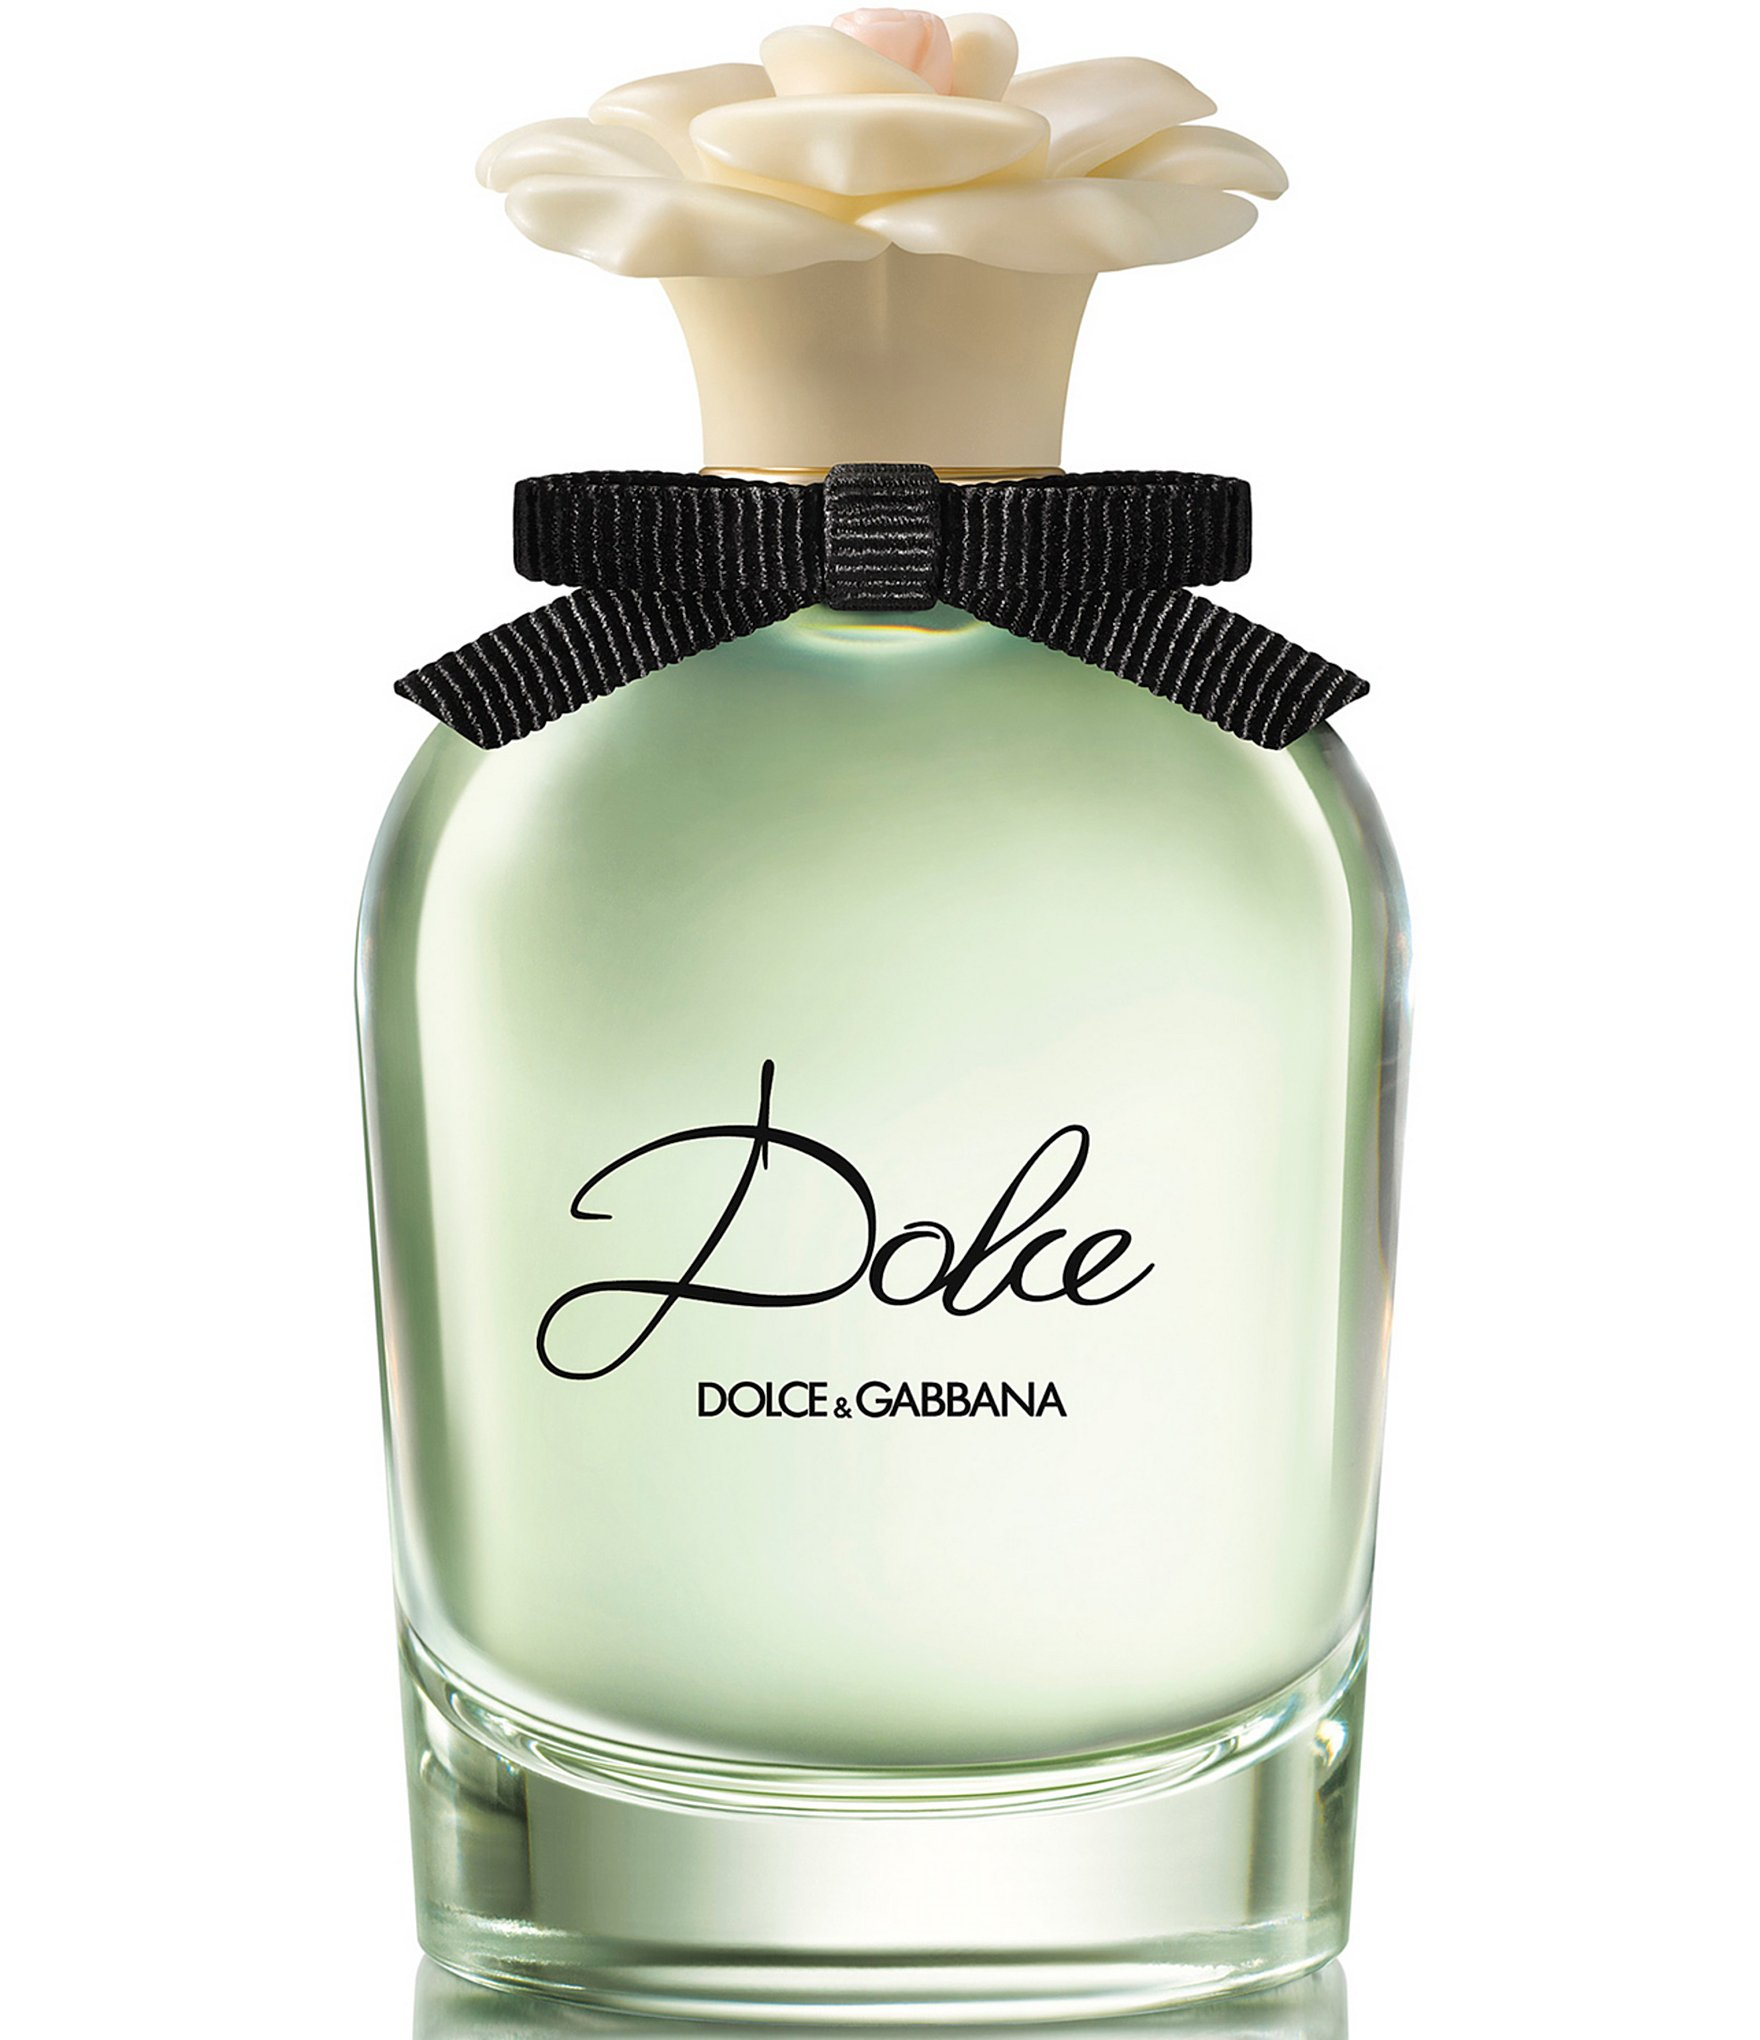 2017 05 dolce gabbana intense perfume review - 2017 05 Dolce Gabbana Intense Perfume Review 24